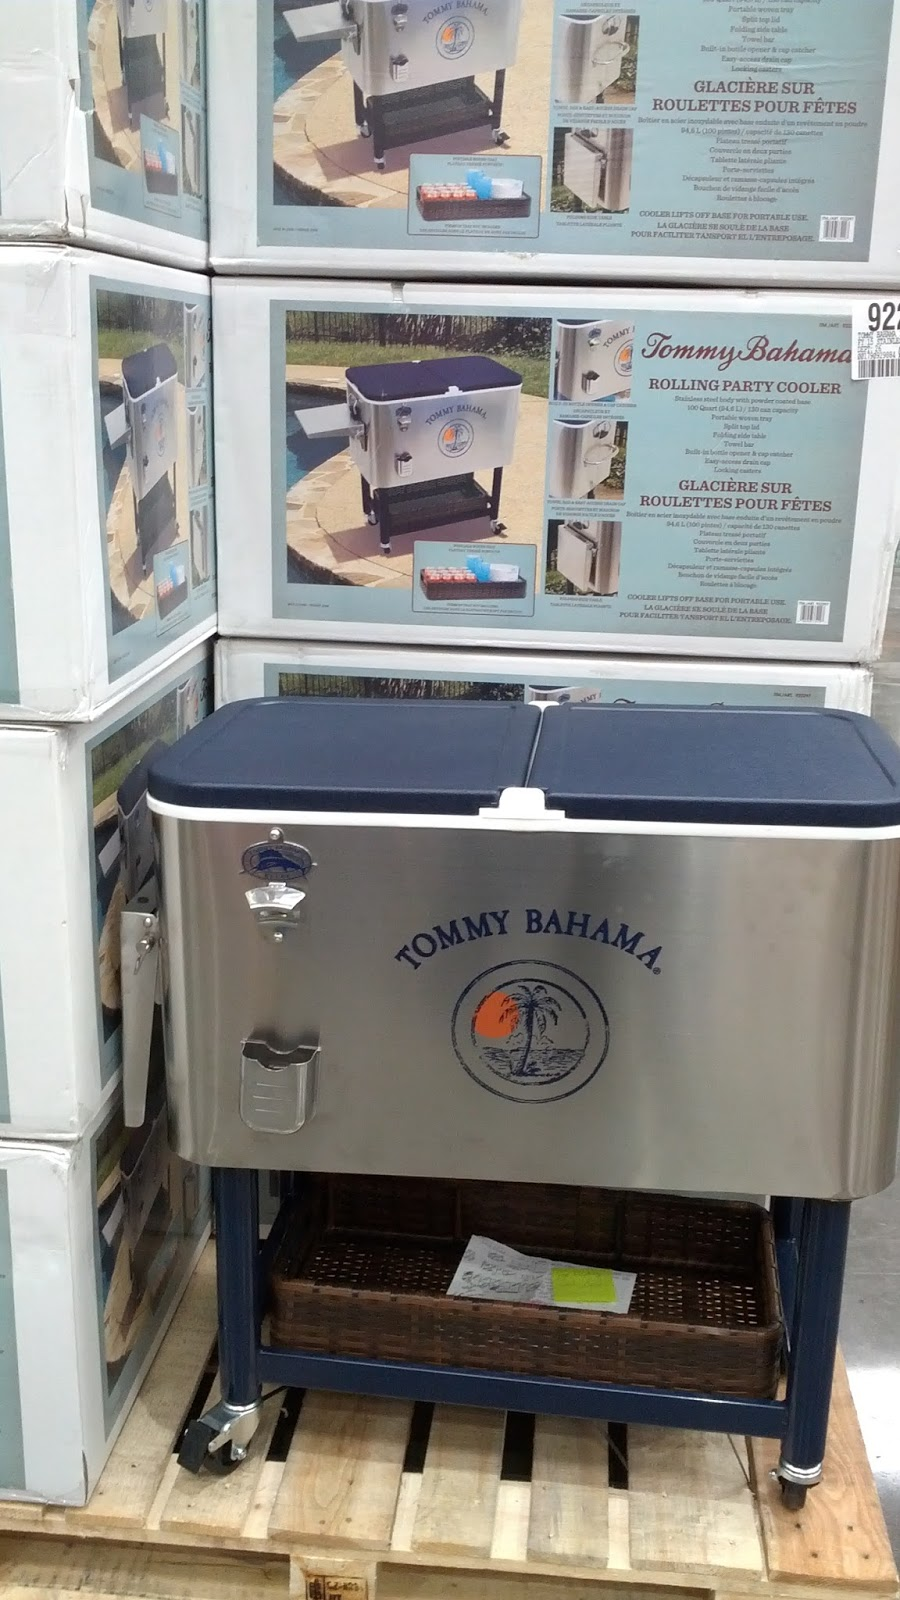 Tommy Bahama Cooler Wheels